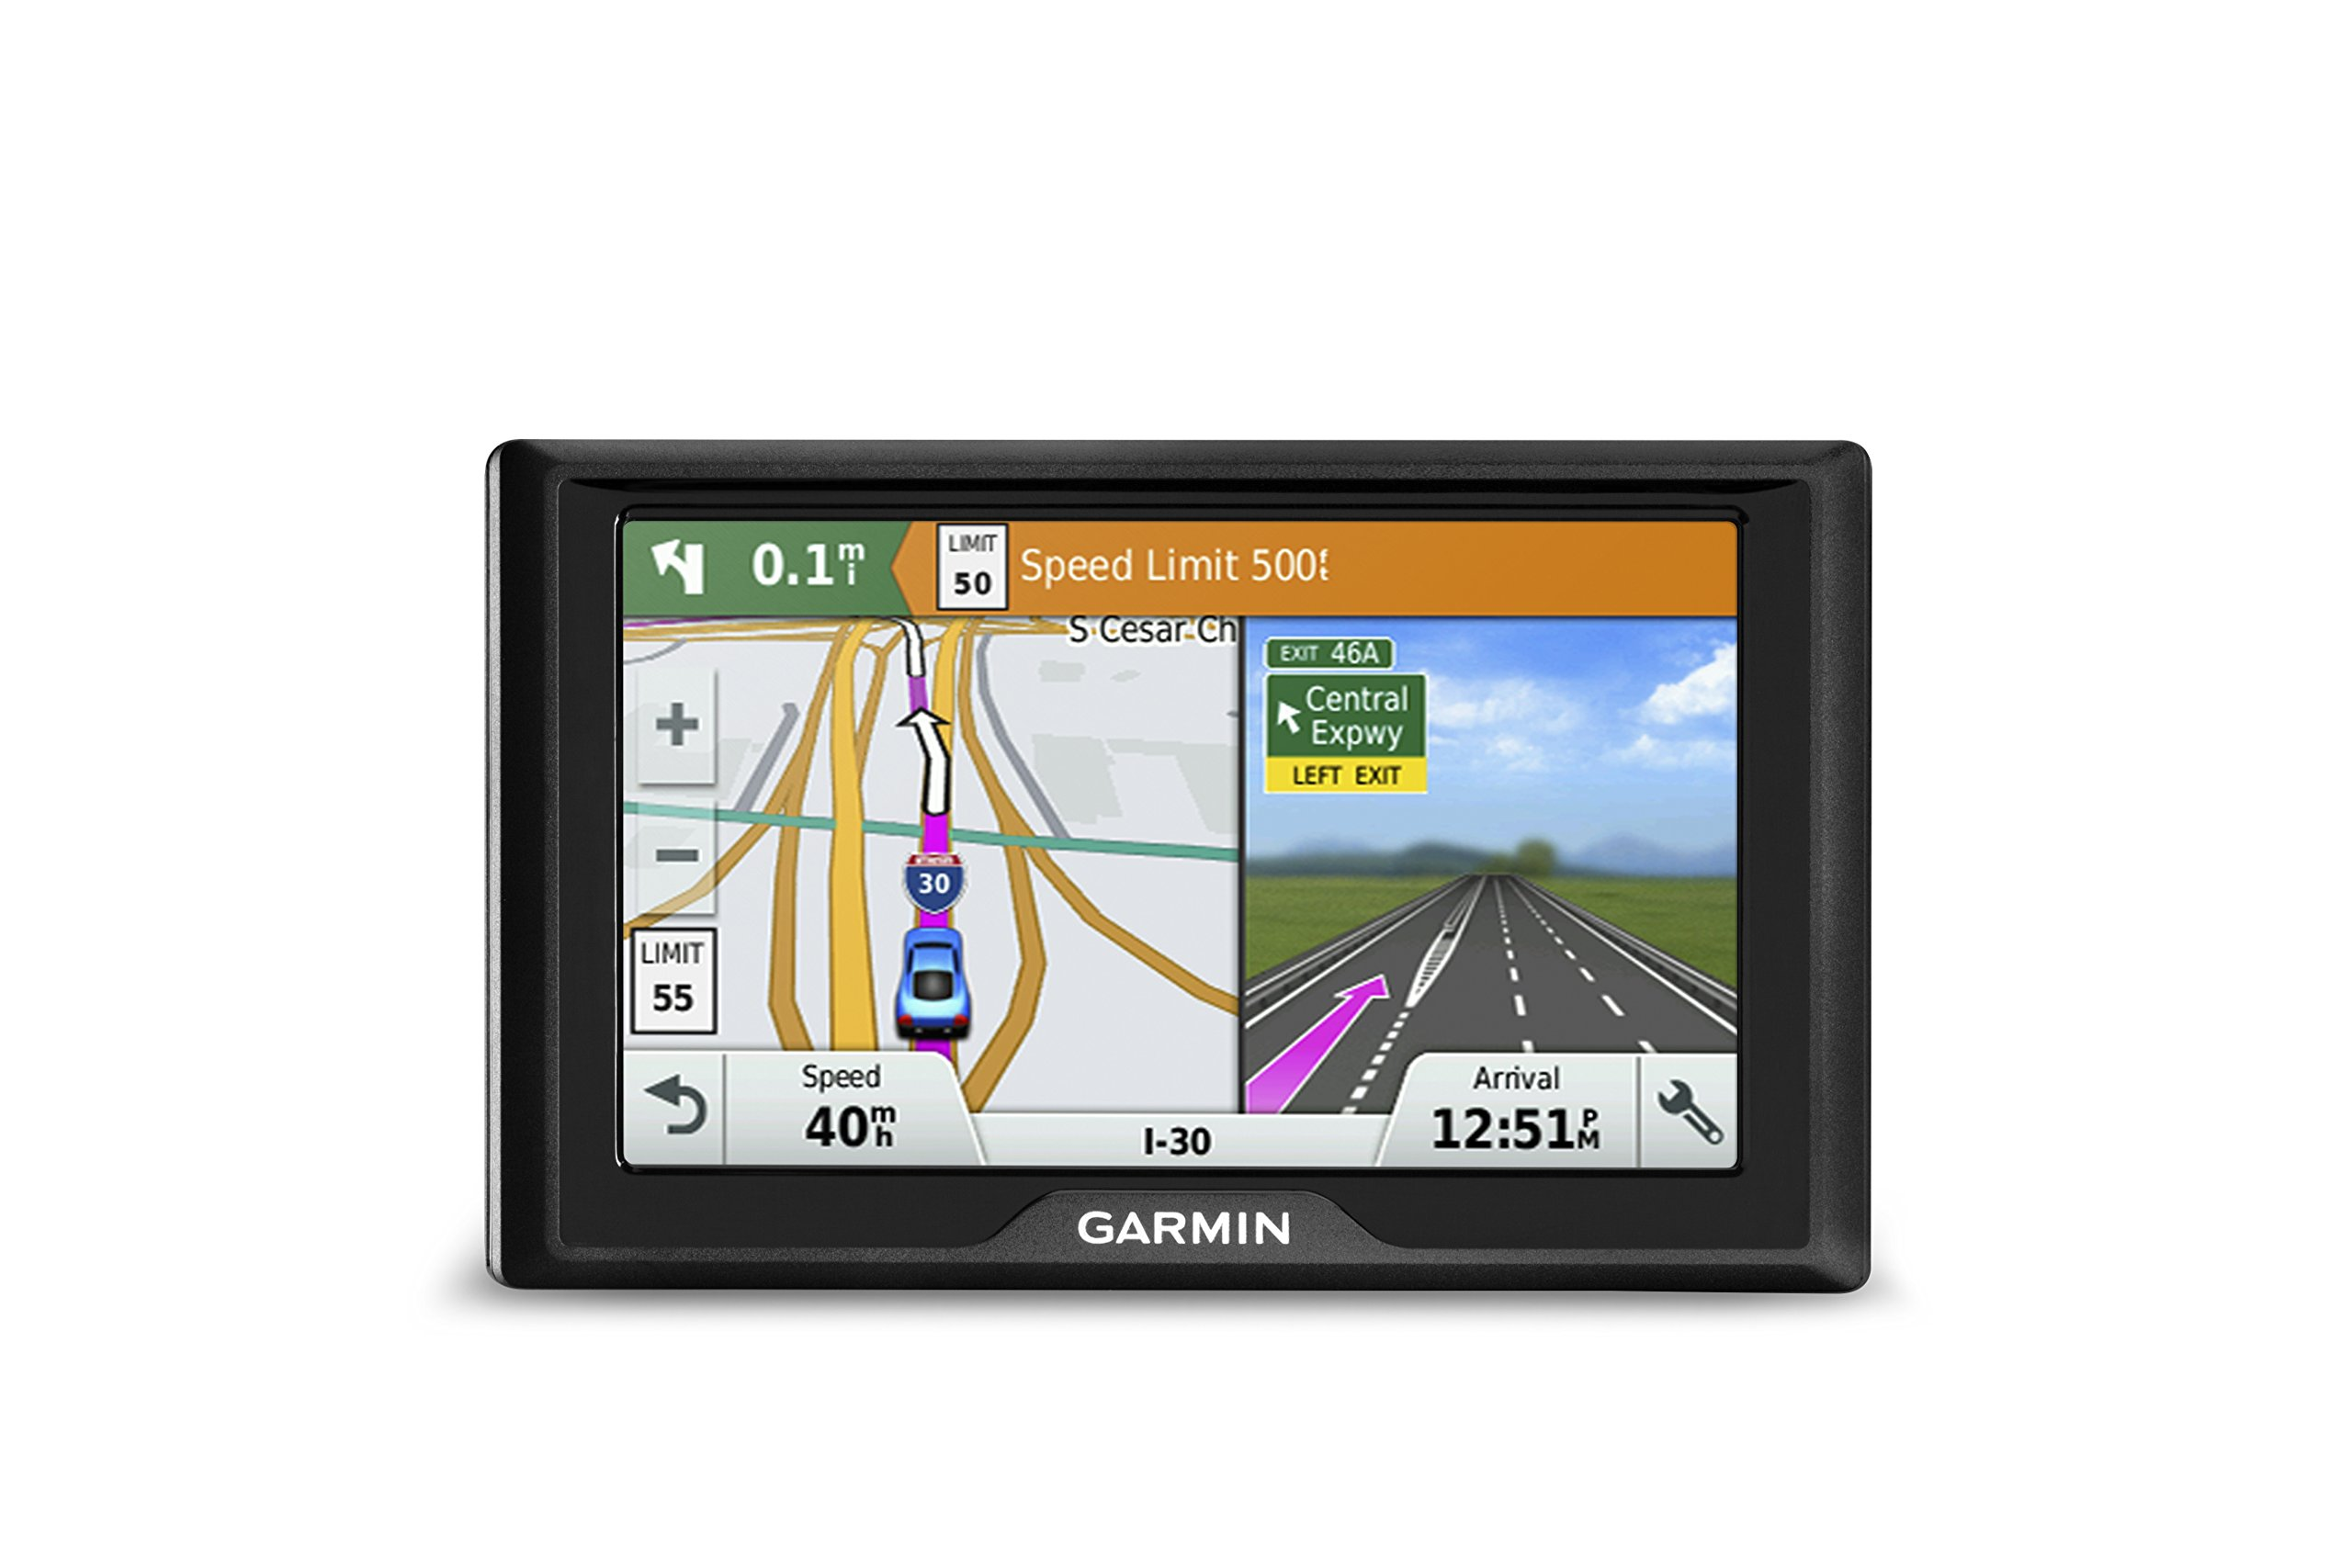 Garmin Navigator Lifetime Directions Foursquare